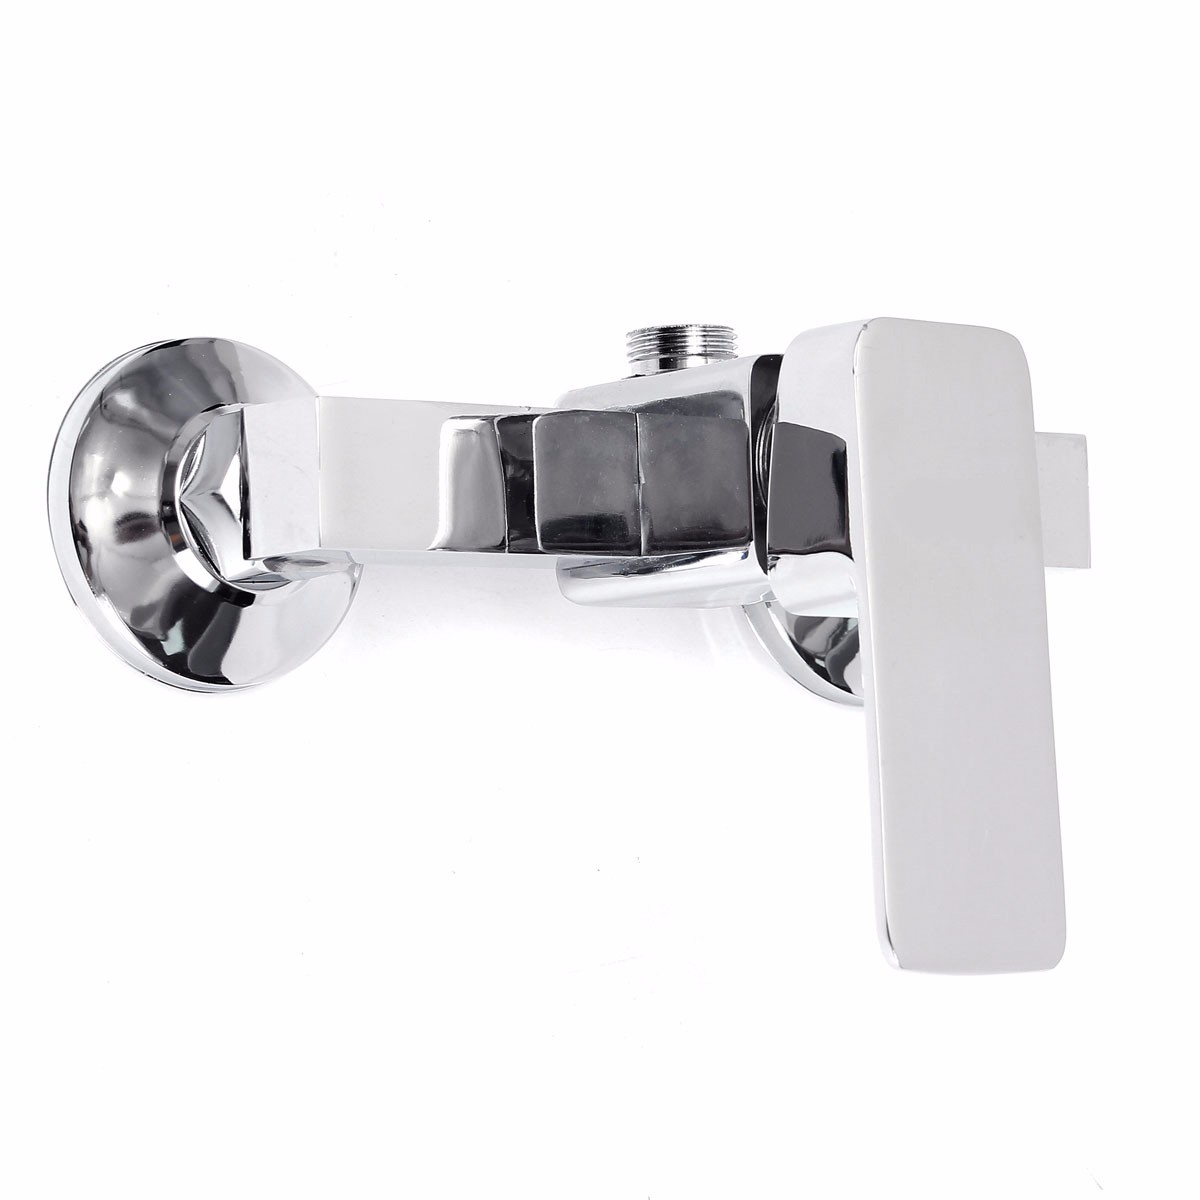 Bathroom Shower Valve Hot Cold Mixer Tap Faucet Copper Wall Mounted